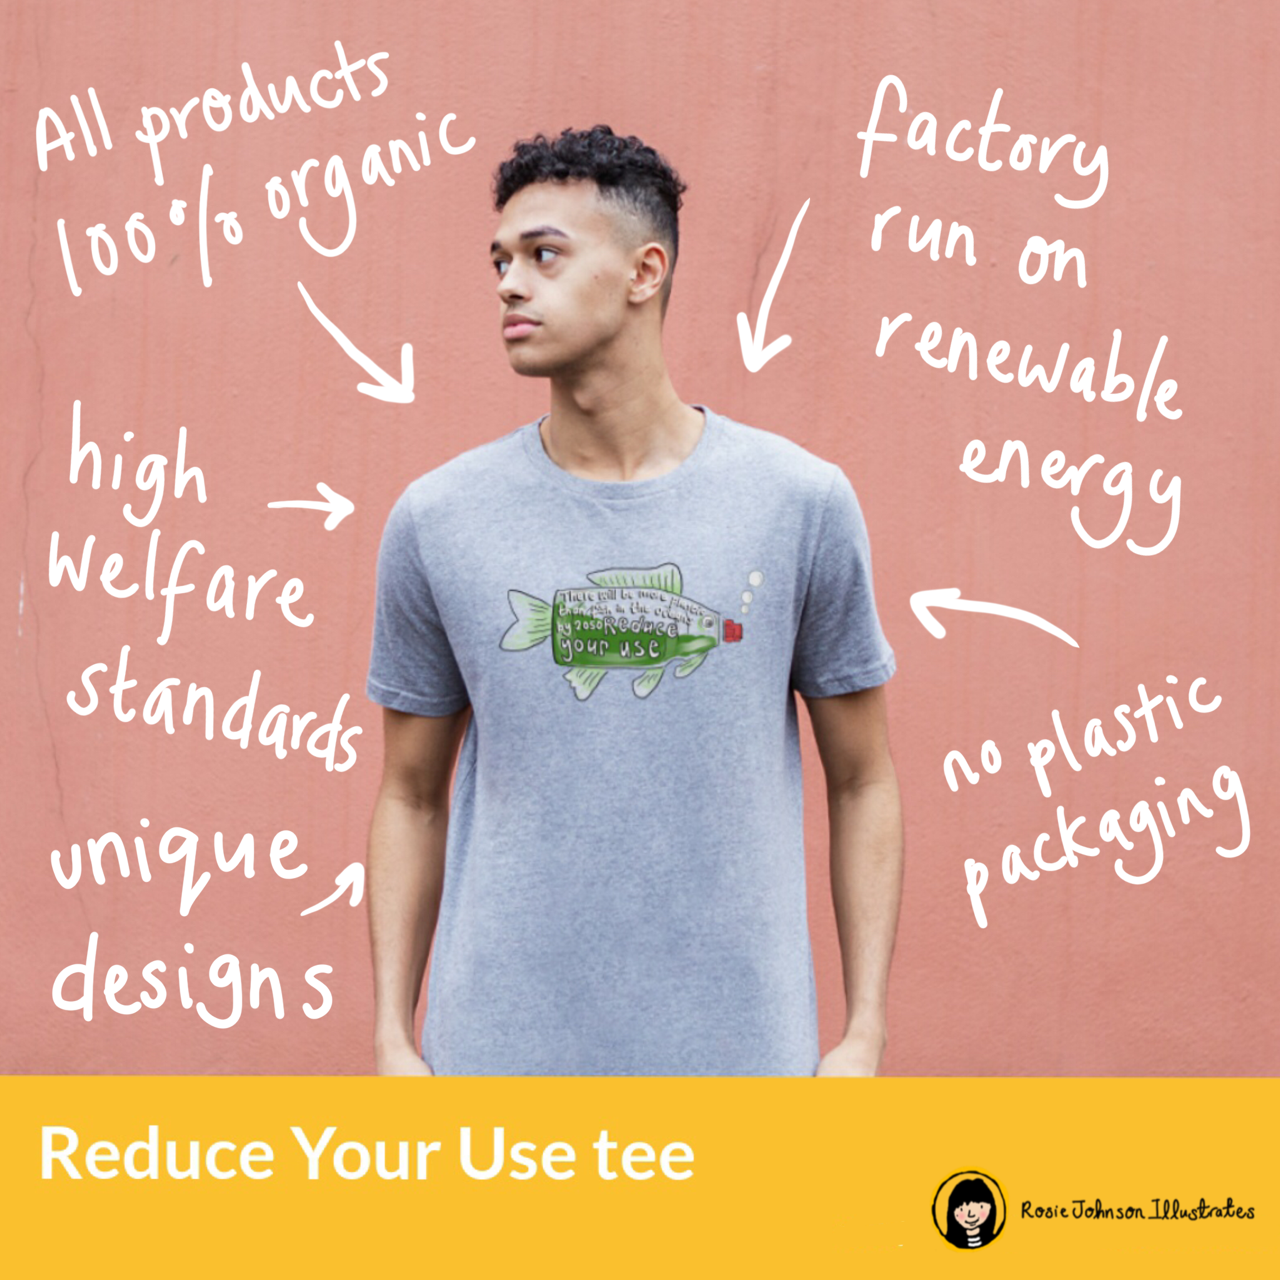 Reduce Your Use Organic tee